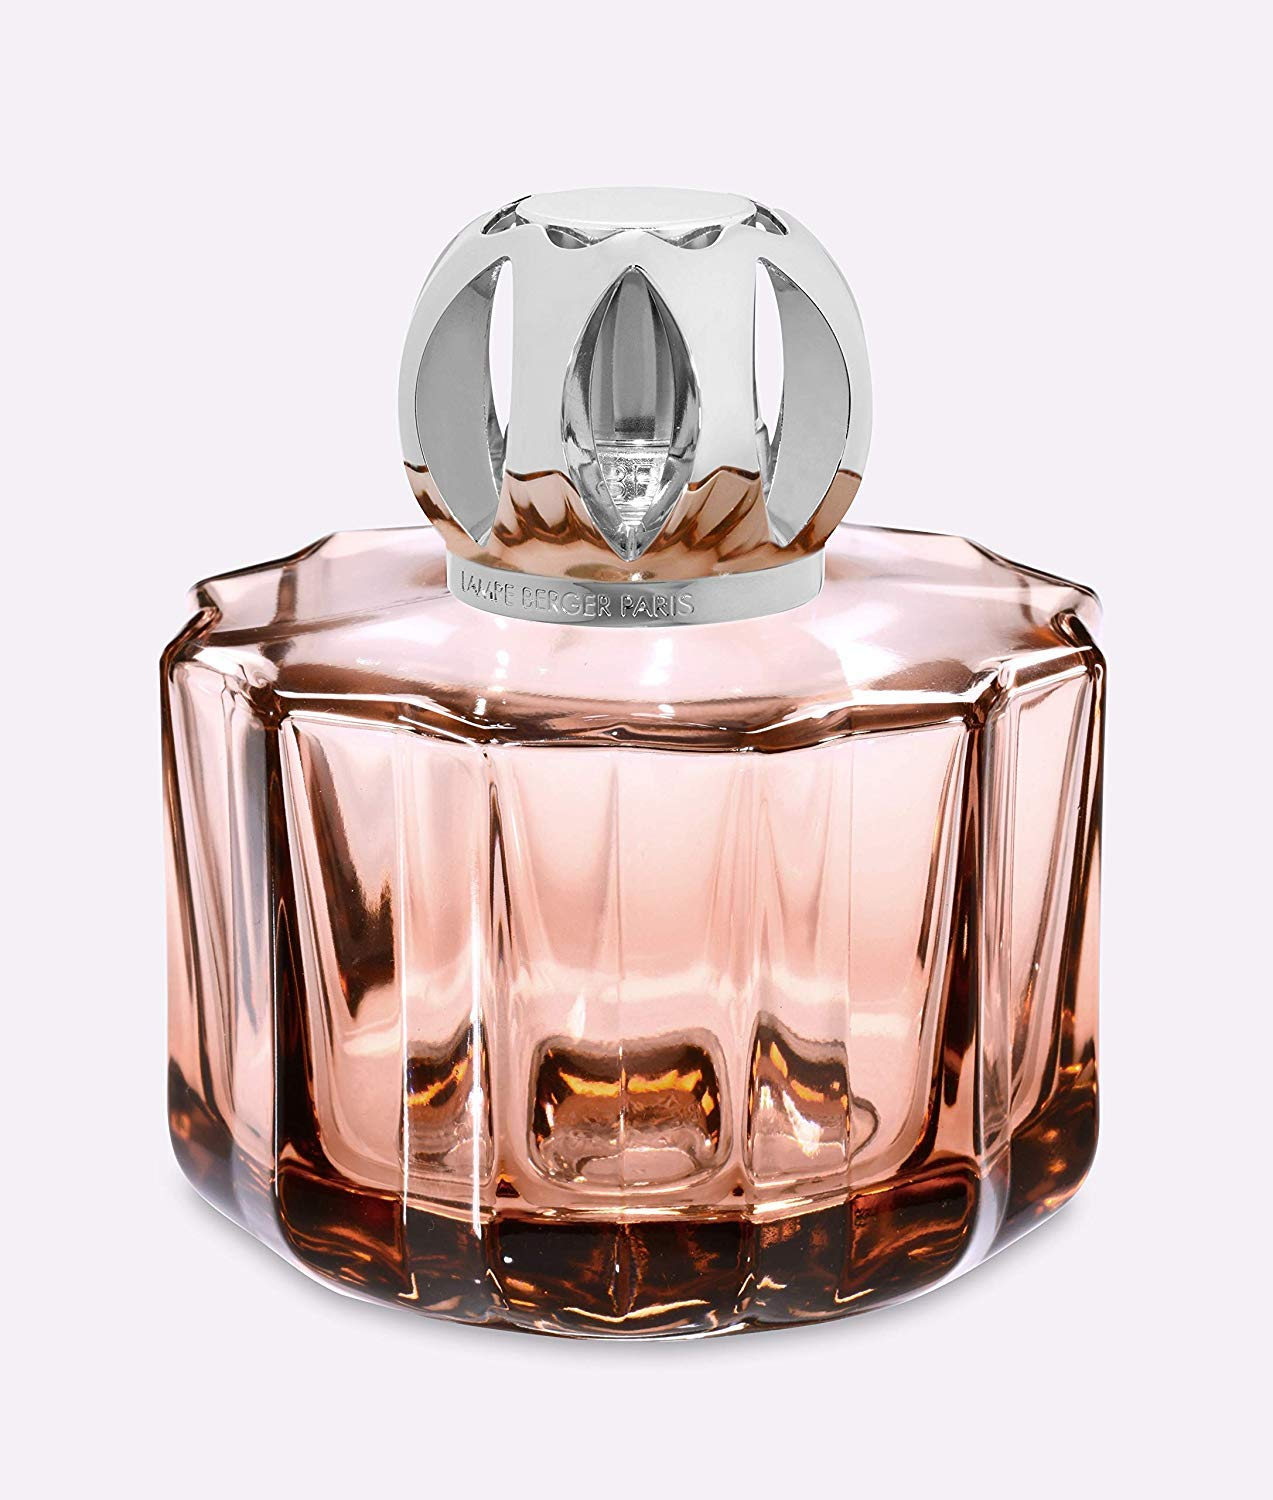 MAISON BERGER (Lampe Berger Poesy Gift Set Lamp - Includes 180ml Bouquet Liberty Refill by MAISON BERGER (Image #2)